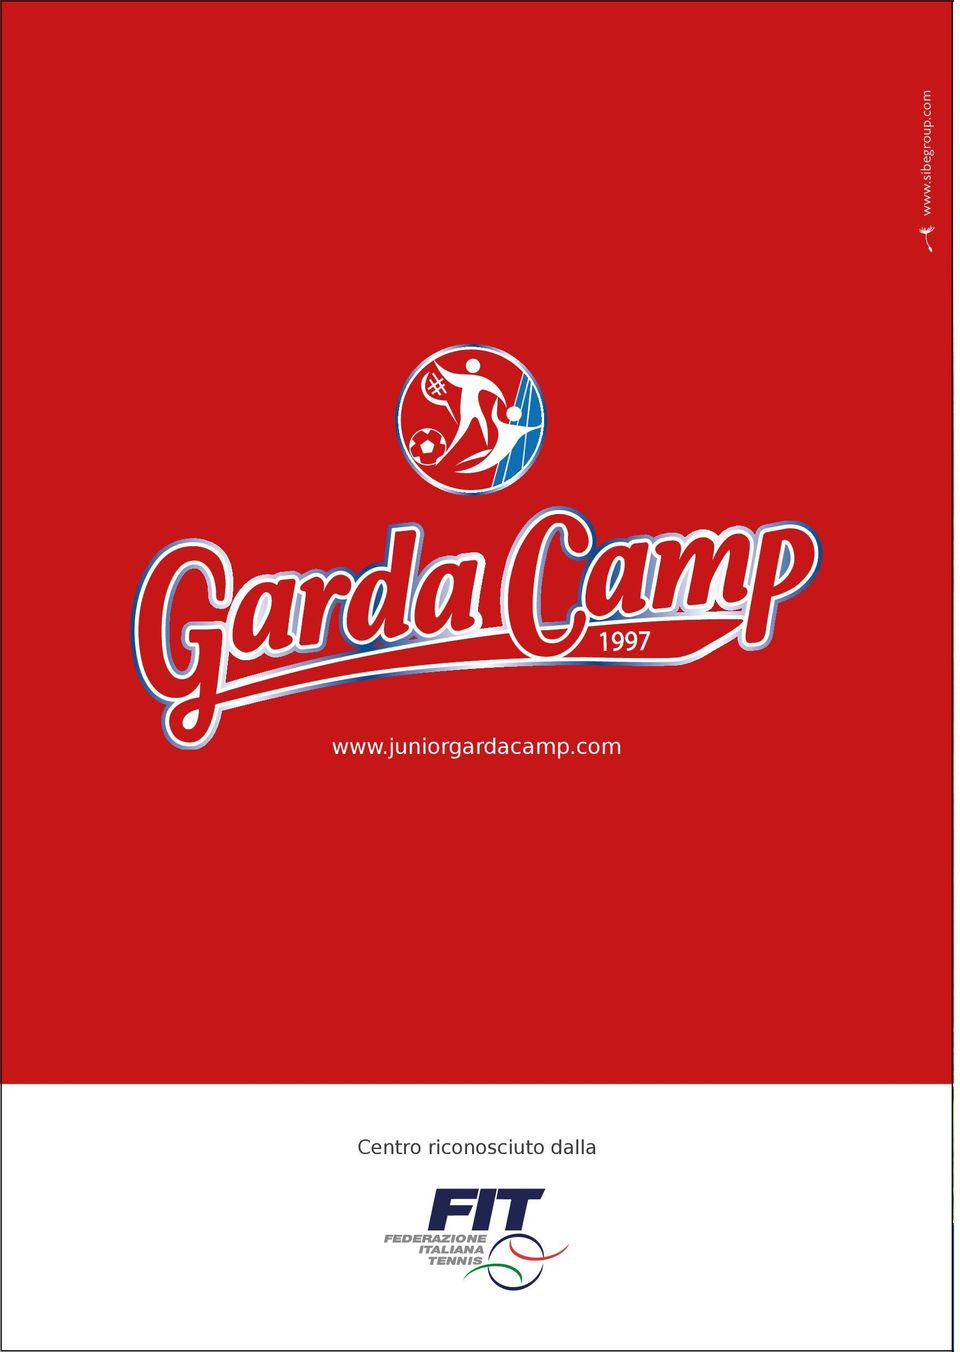 juniorgardacamp.